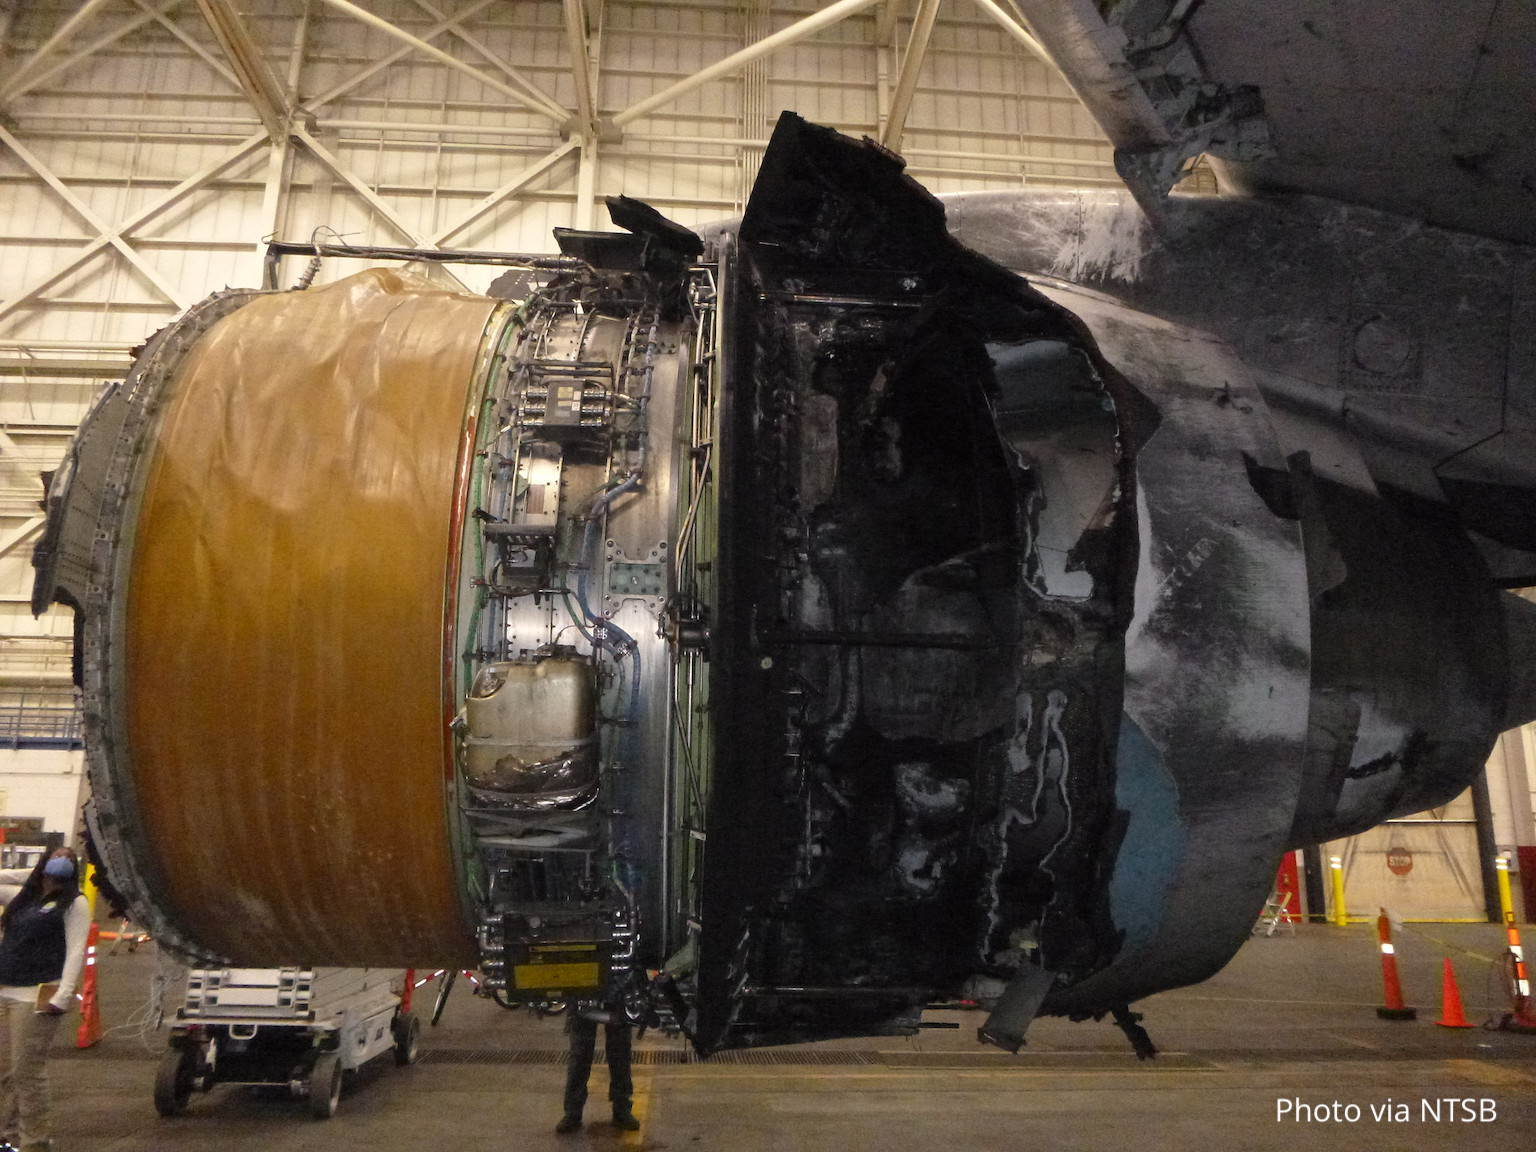 Damage to the PW4077 engine on N772UA, which operated UA328